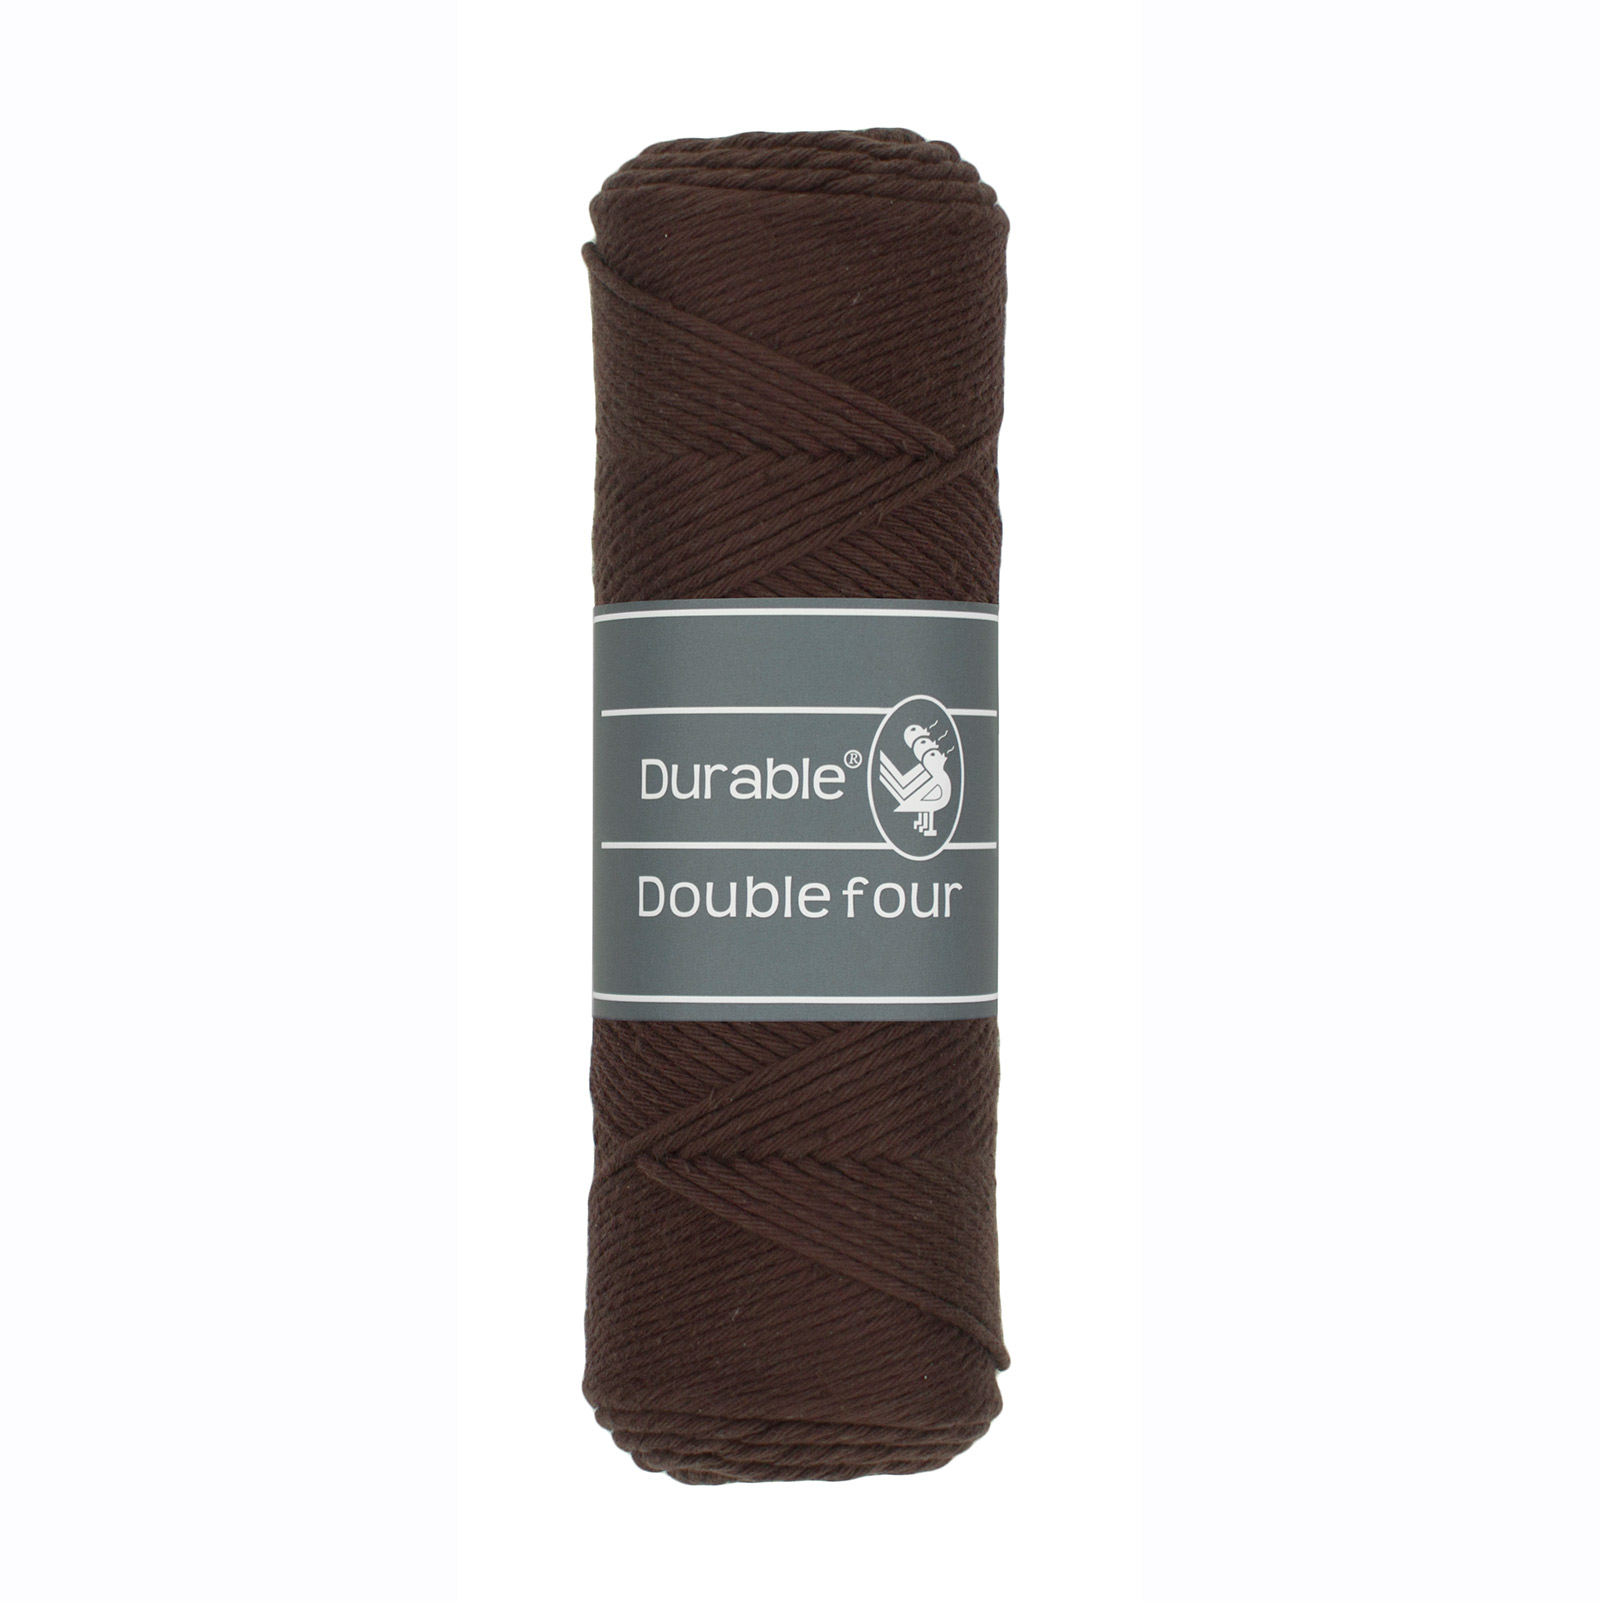 Durable Double Four – 2230 Dark Brown